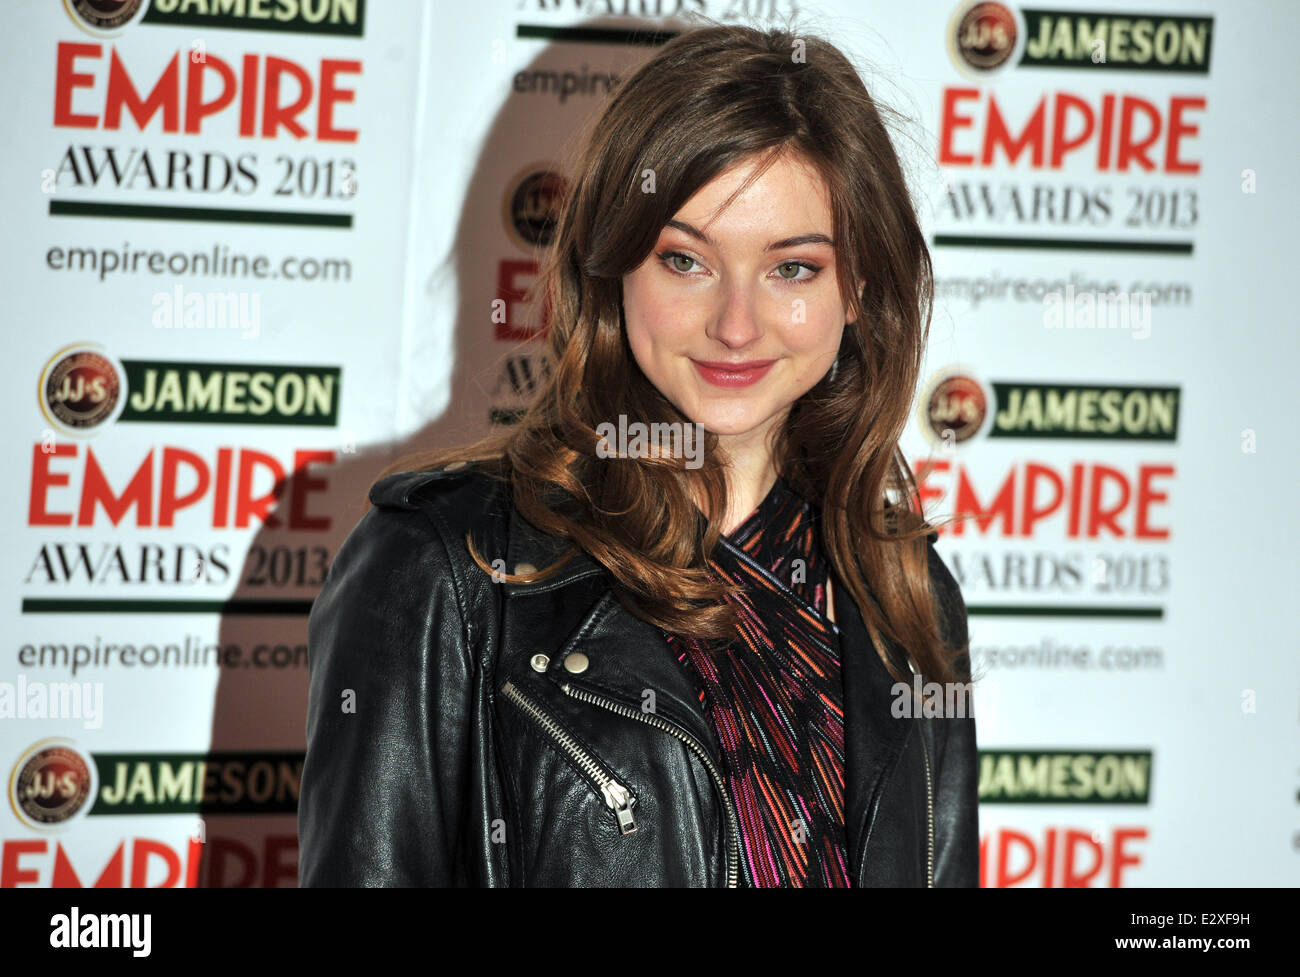 Discussion on this topic: Will Merrick (born 1993), bronagh-gallagher/